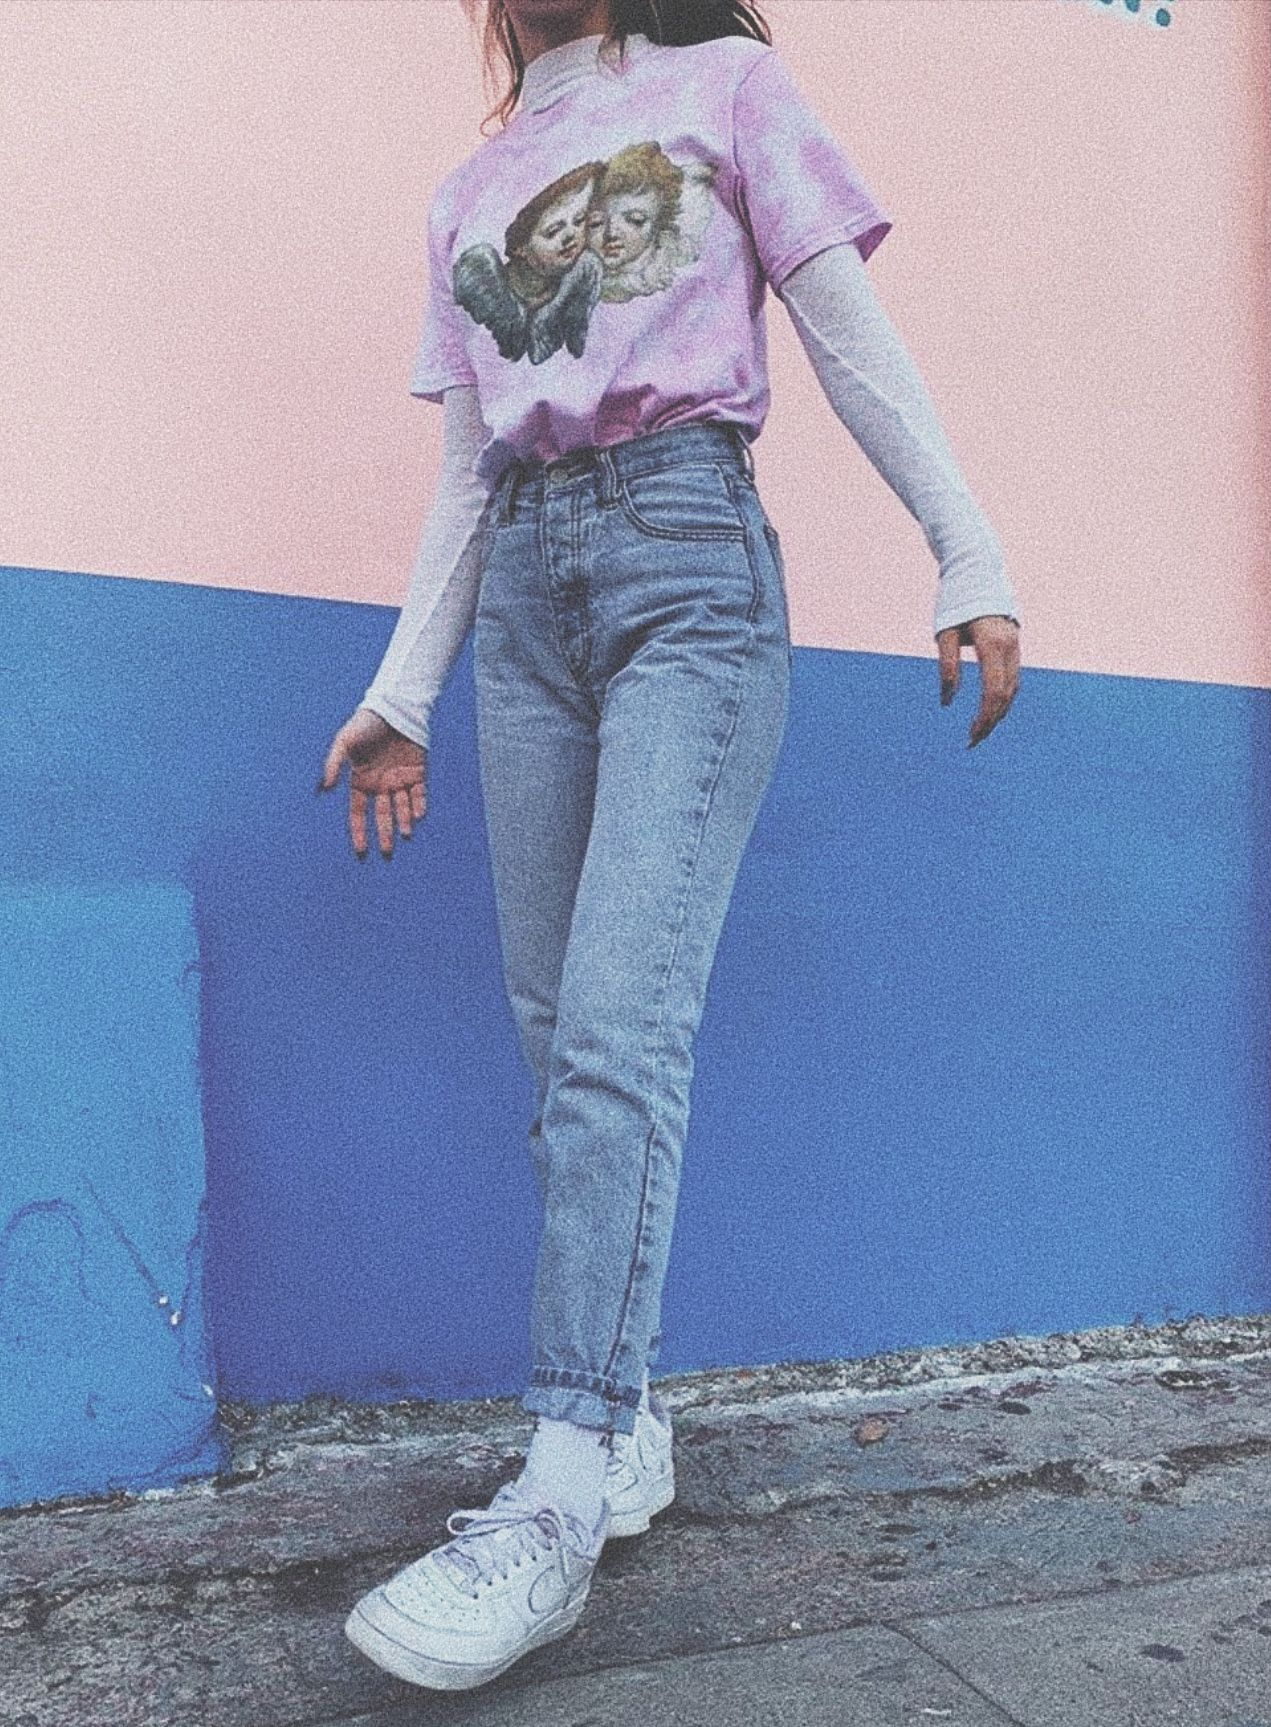 Pin by K on Fashion outfits in 2020 | Nike air force 1